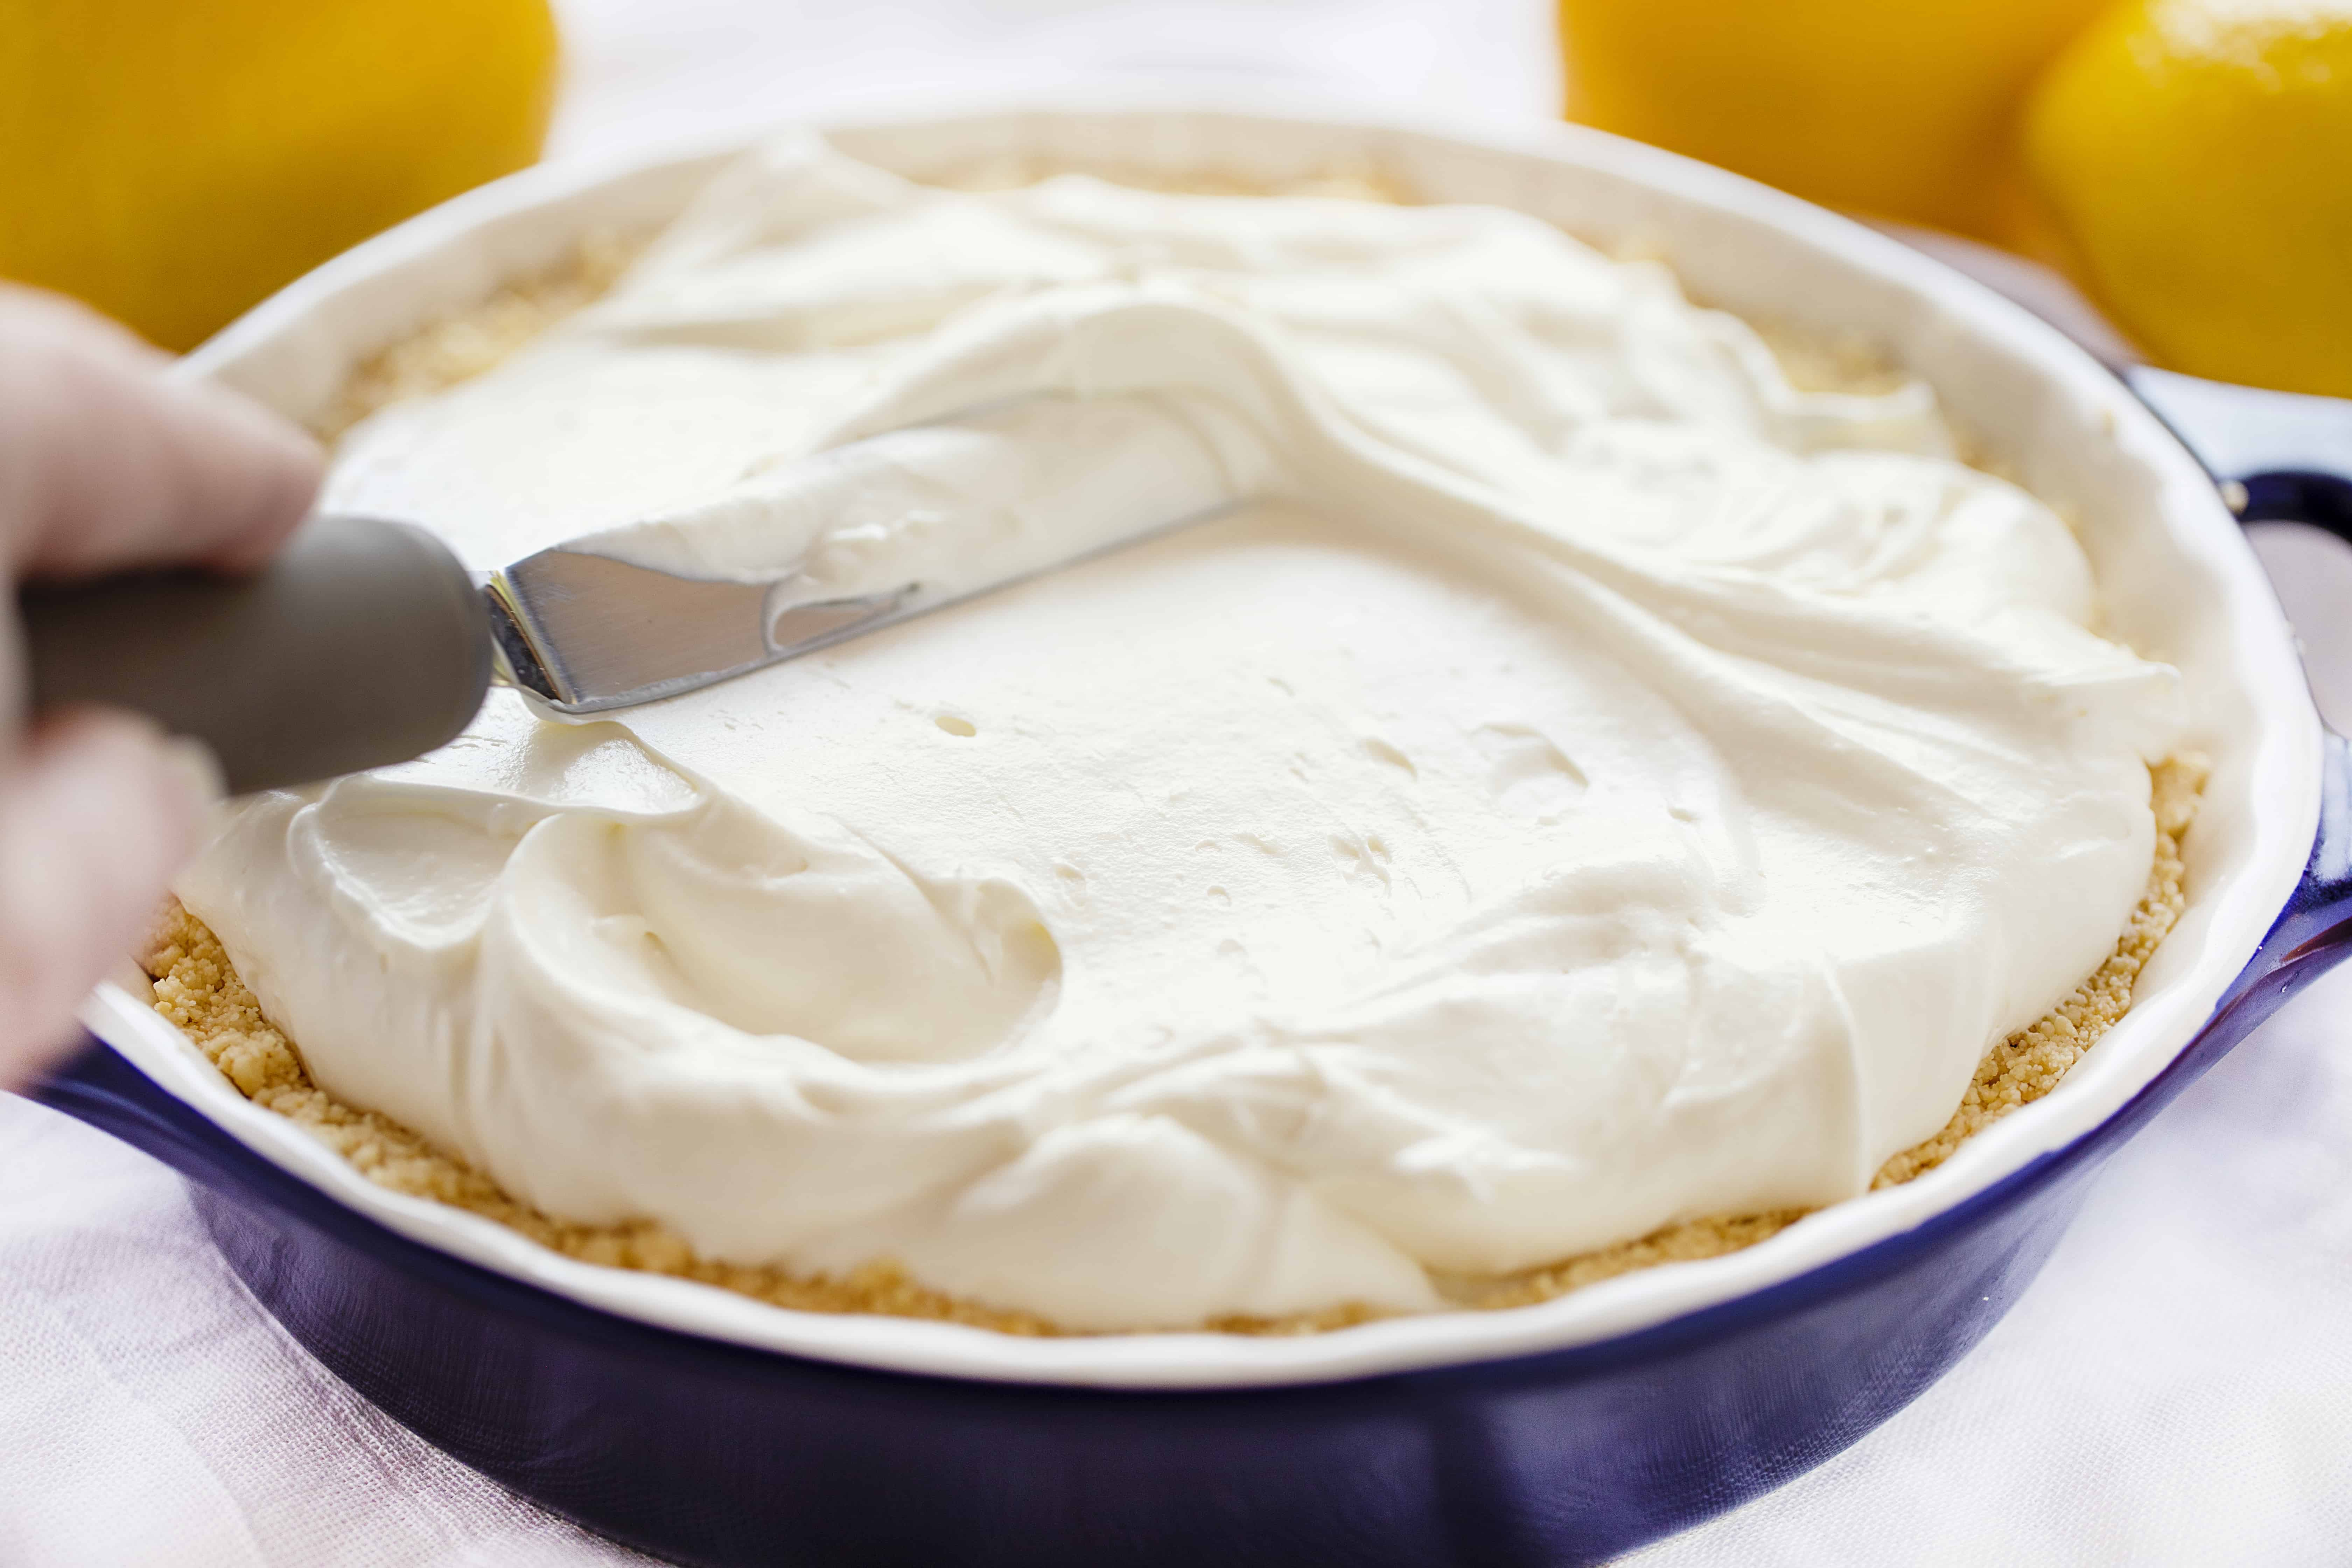 How to Make Lemon Cheesecake Cream Pie